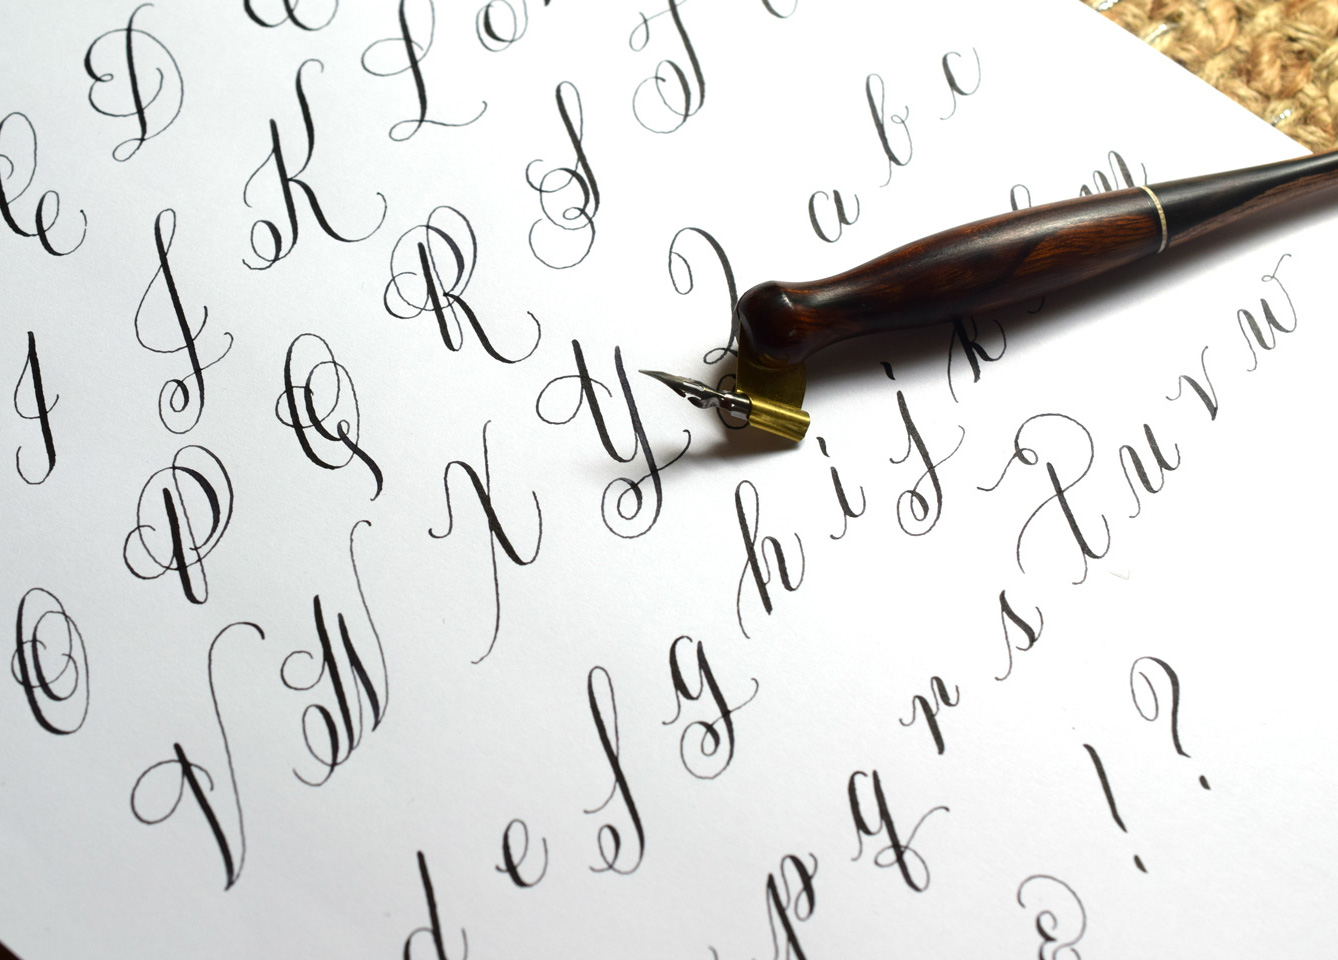 Calligraphy Input Online 5 Free Calligraphy Learning Resources You May Not Know About The